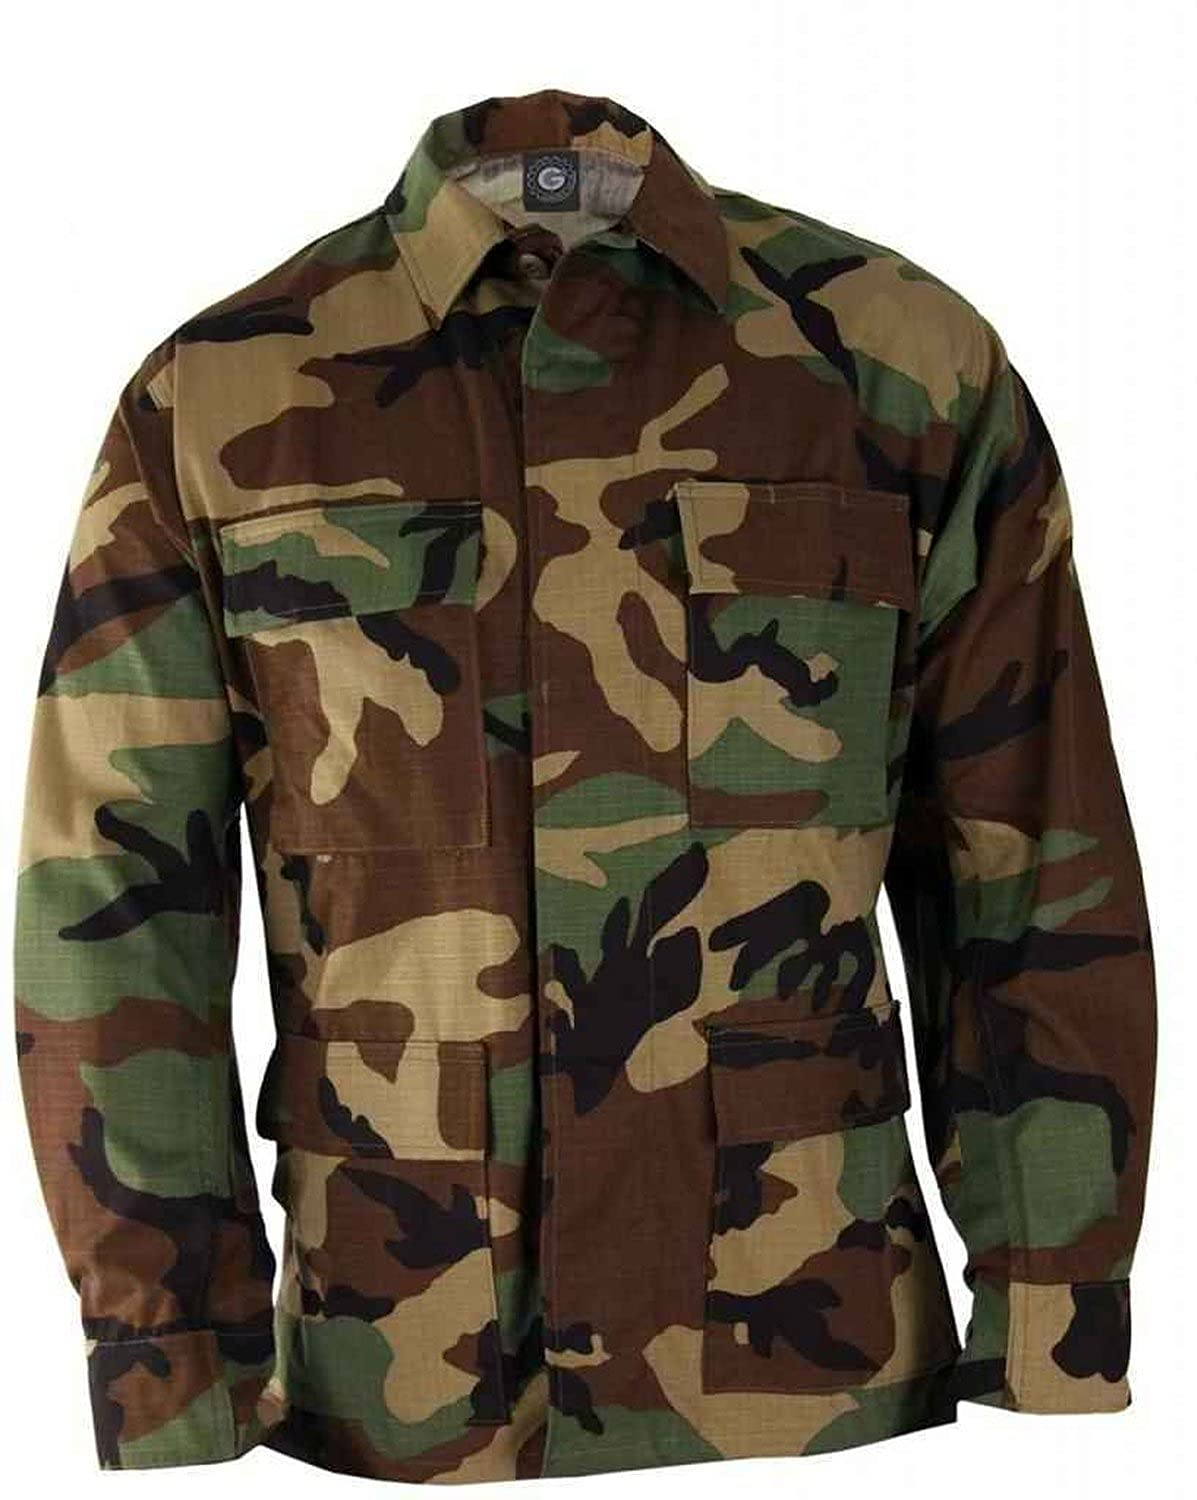 Mens Shirt - Military Ripstop Bdu